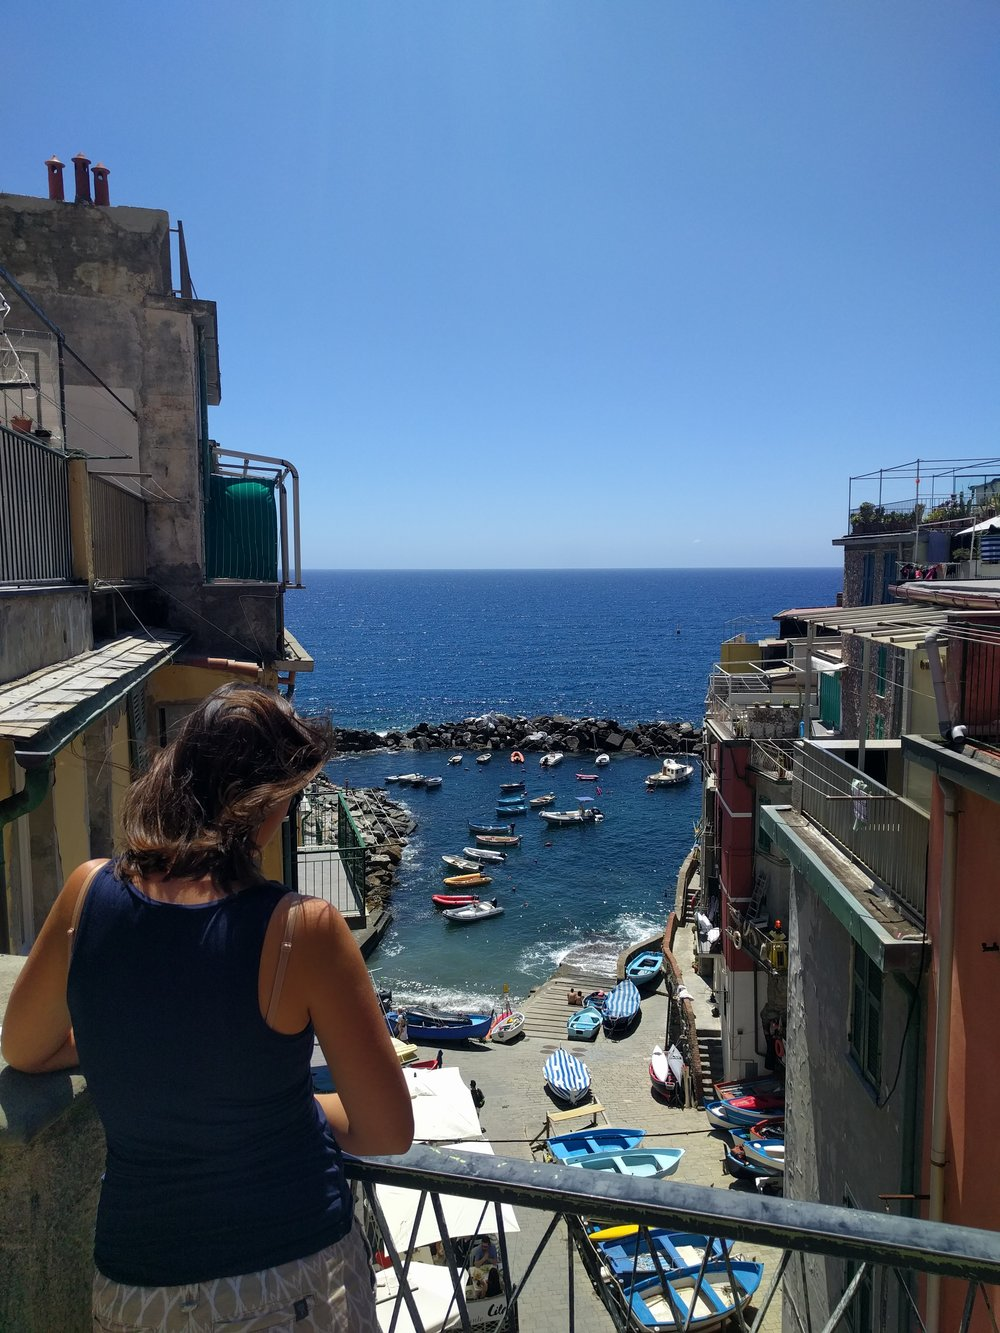 Enjoying the view in Cinque Terre, Italy